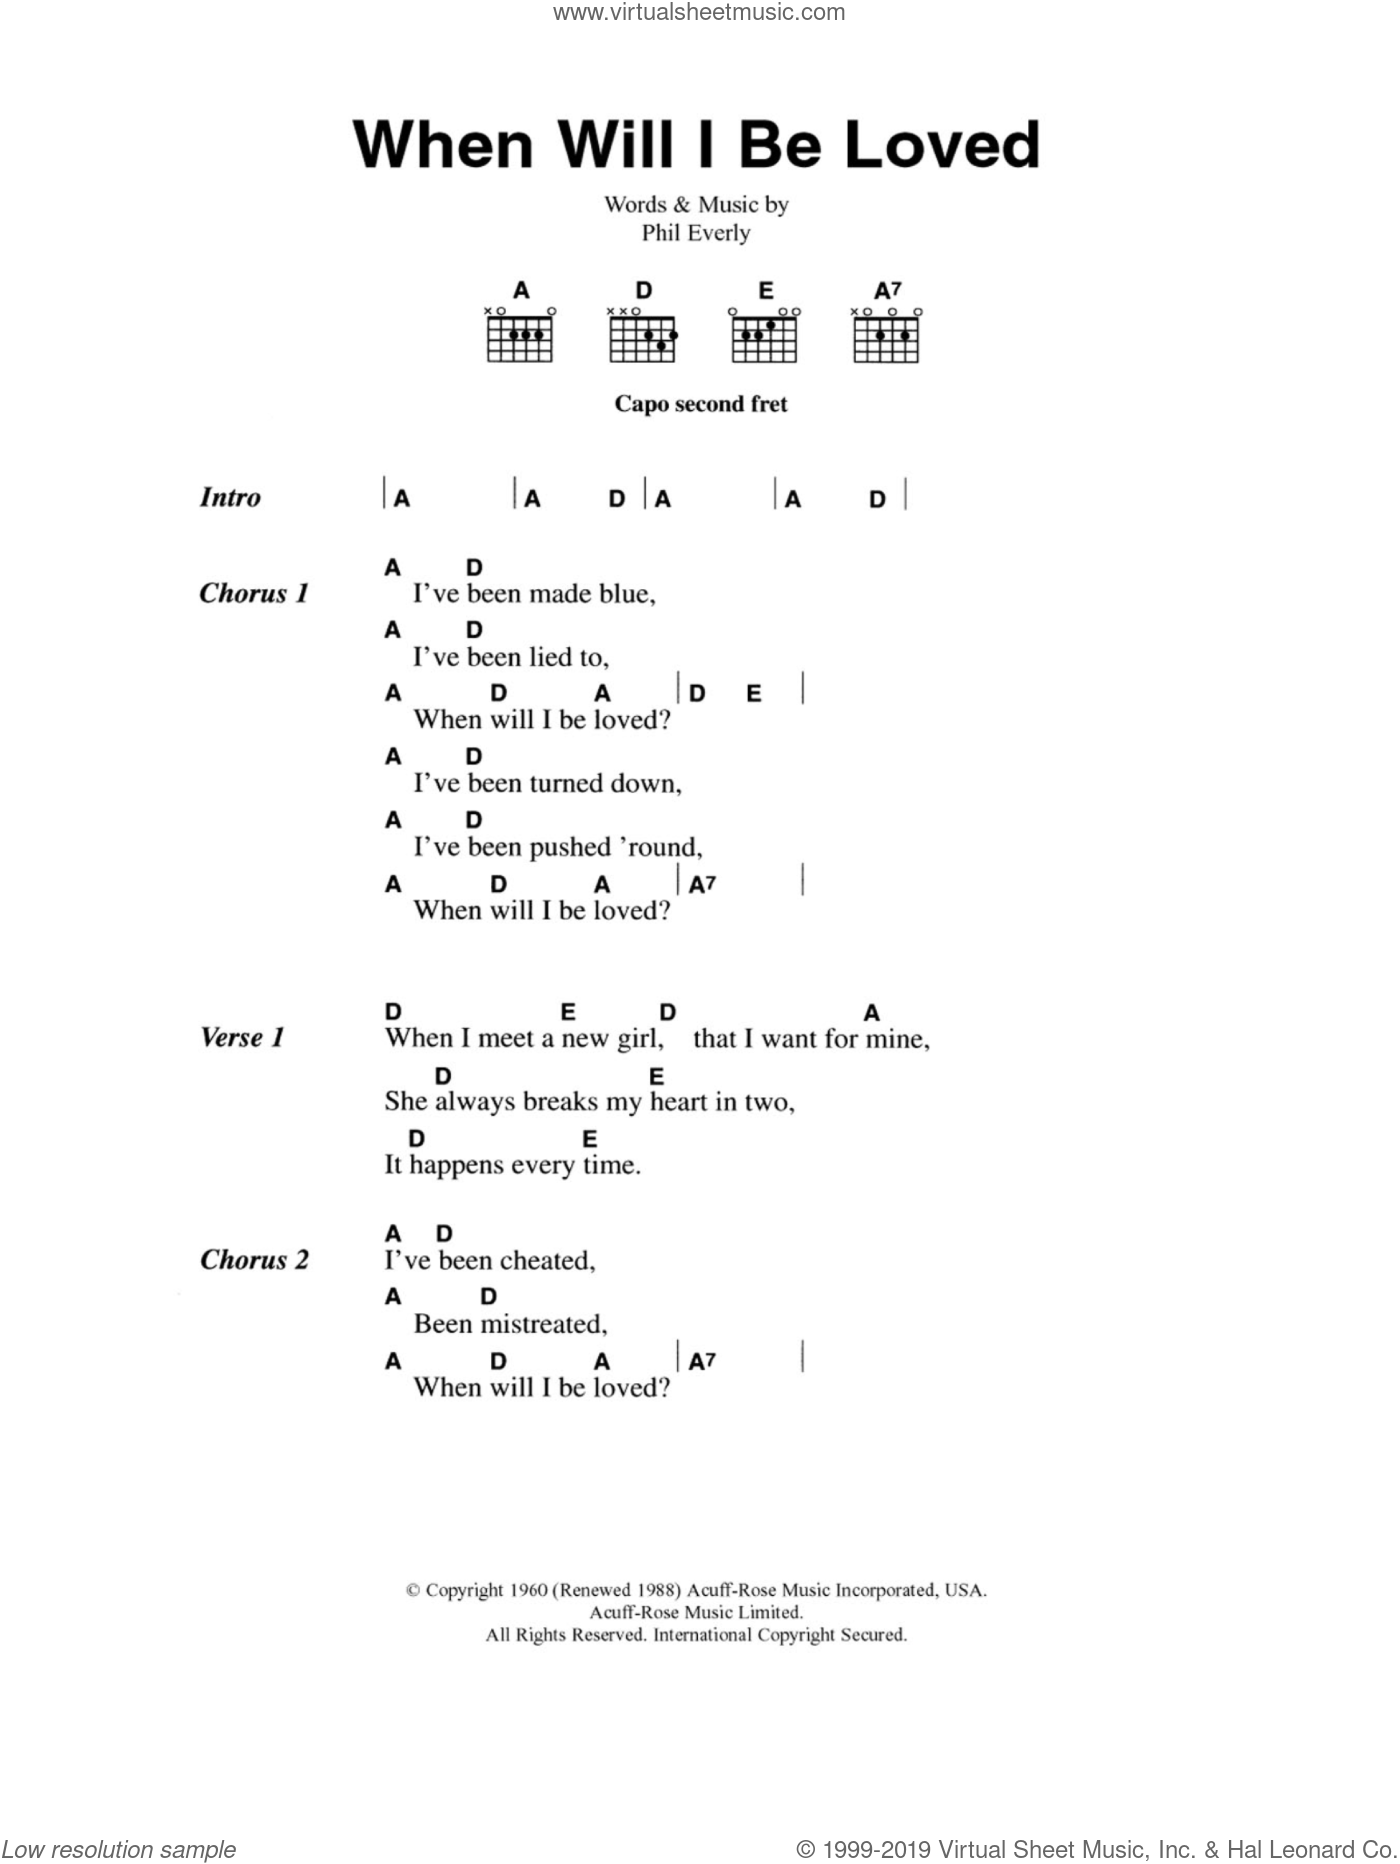 When Will I Be Loved sheet music for guitar (chords) by Phil Everly